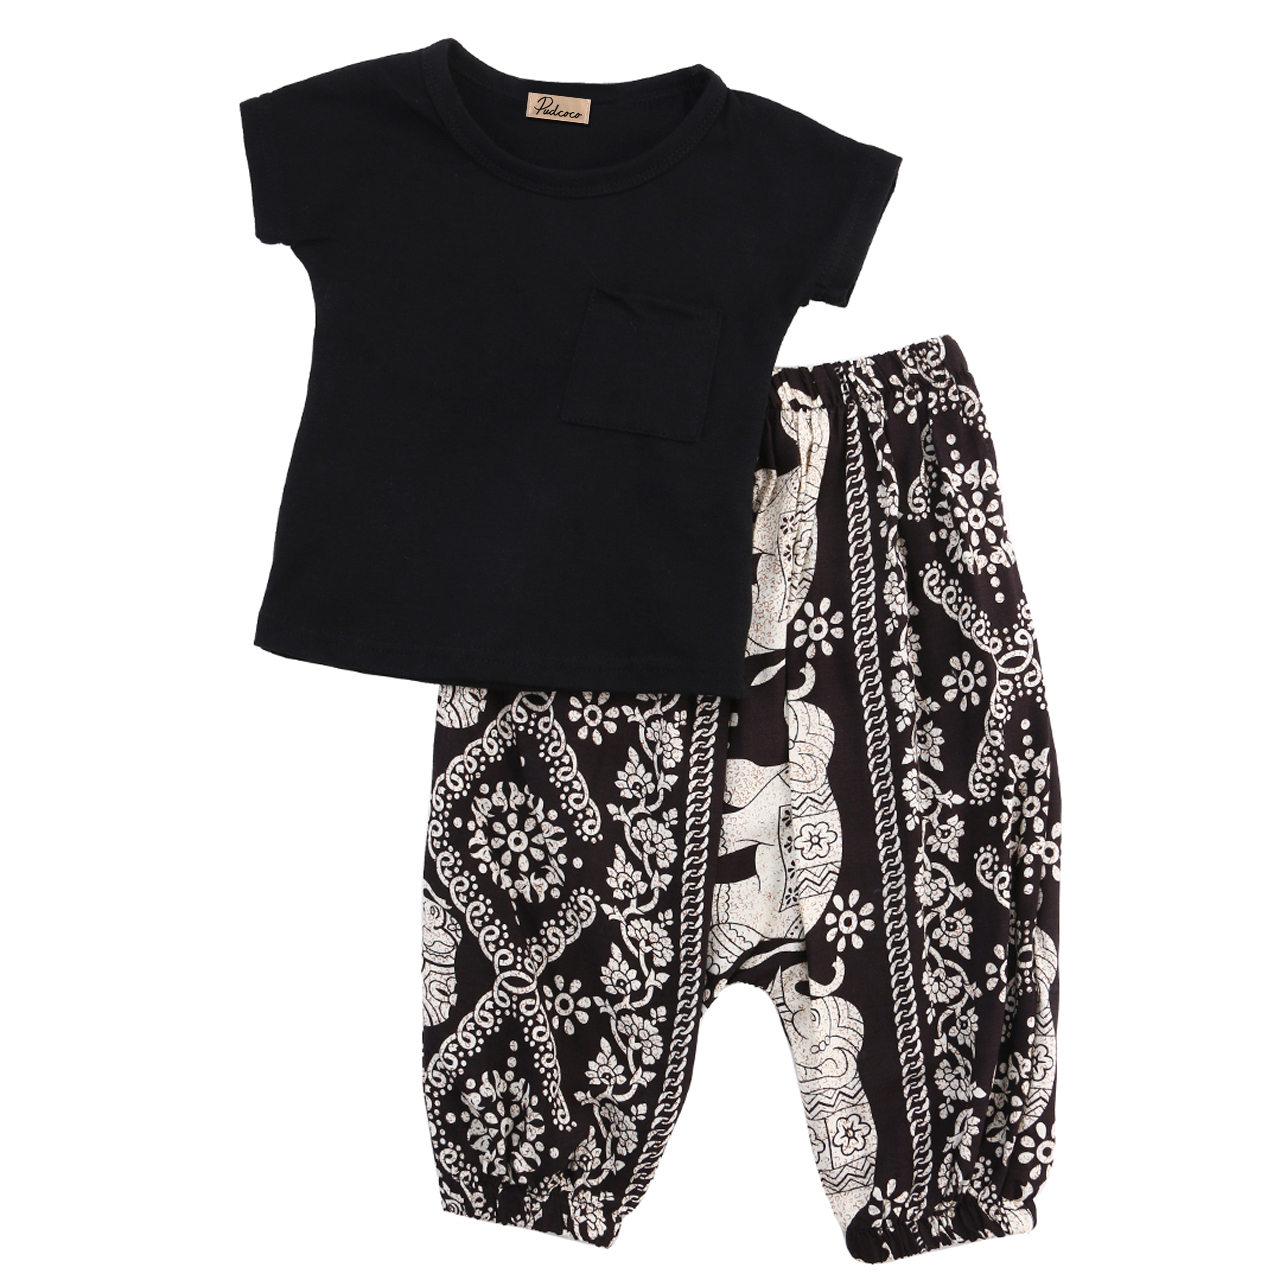 Clothing Sets Methodical 2017 Stylish 2pcs Toddler Infant Kids Baby Girls Summer Cool Clothing Set T-shirt Tops+harem Floral Pattern Pants Outfits Set Pure And Mild Flavor